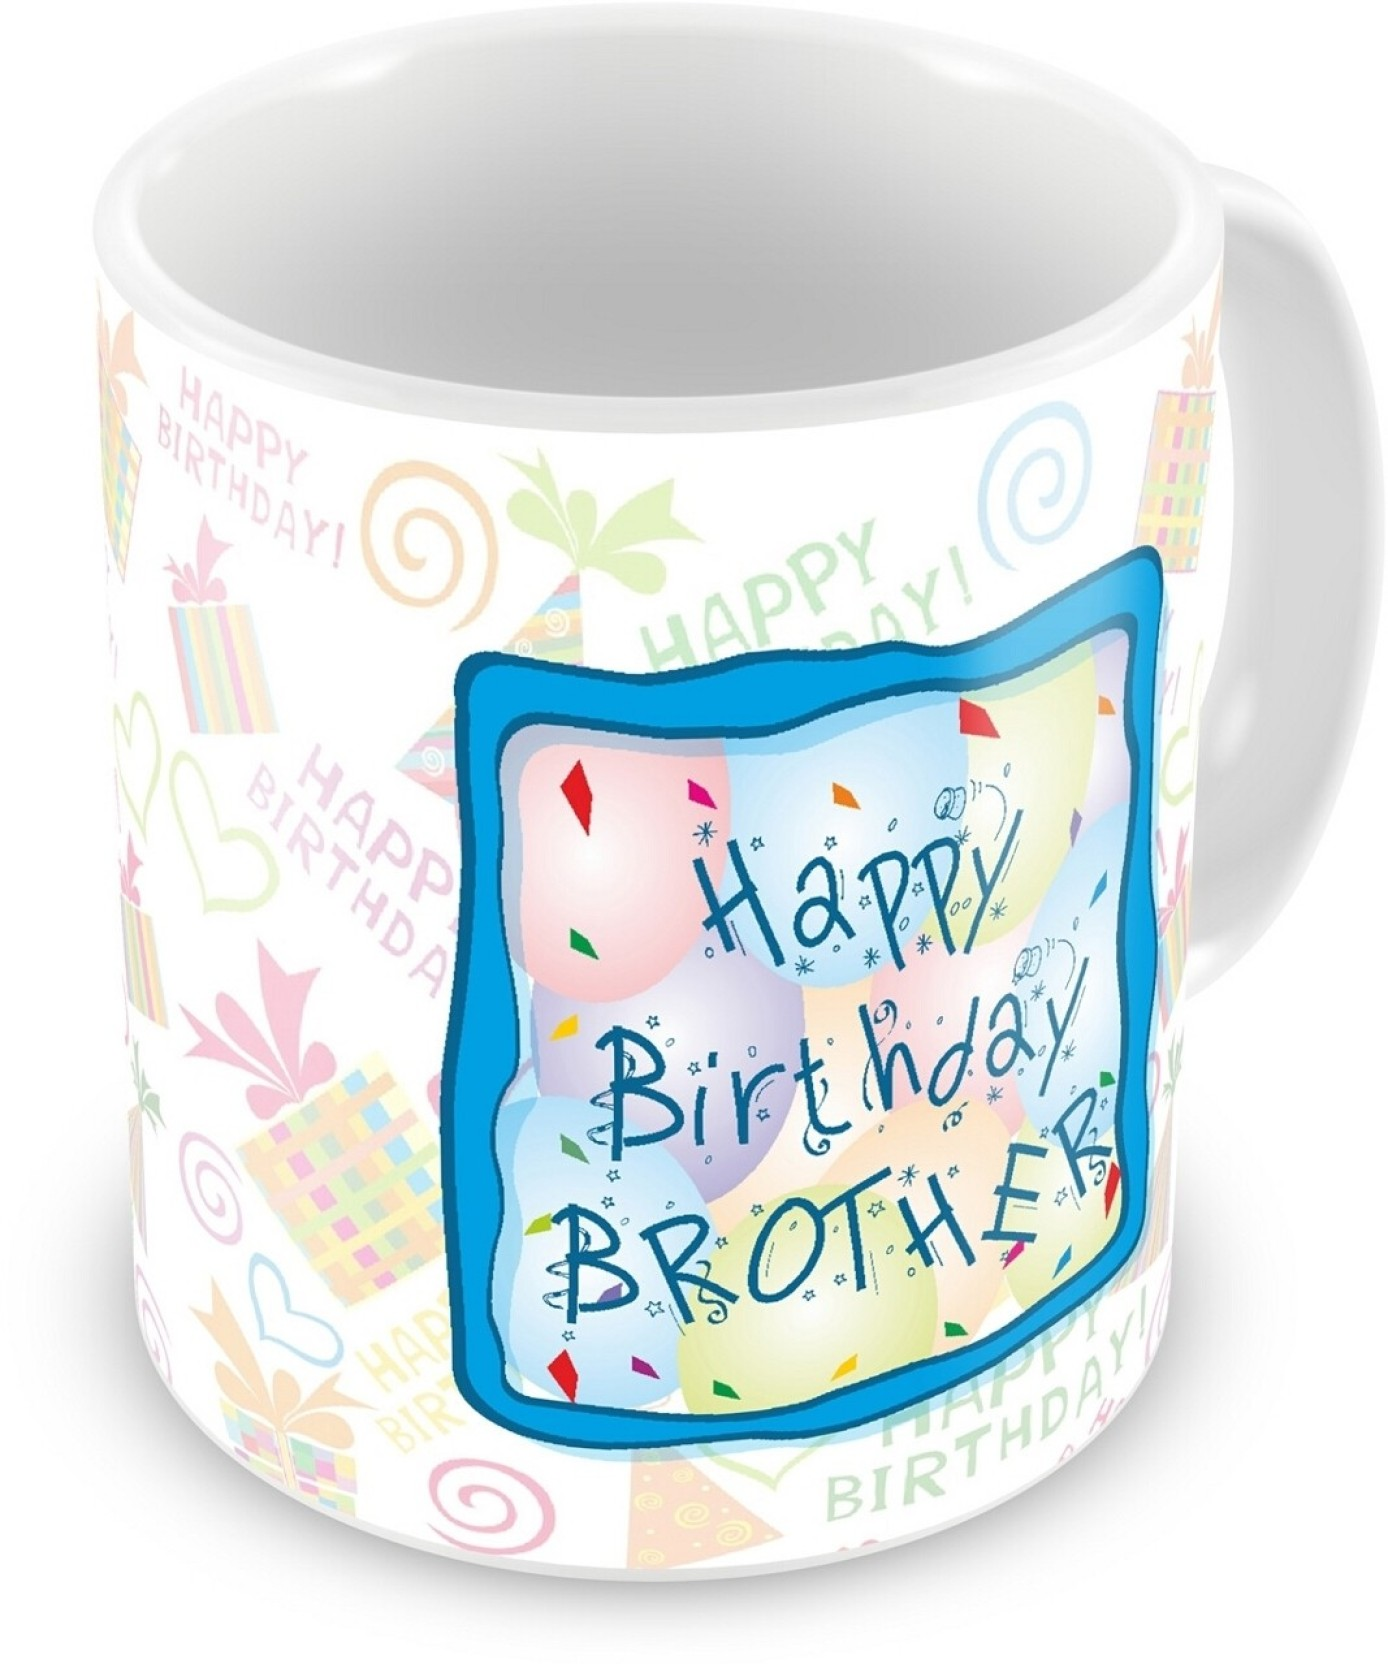 Everyday gifts happy birthday gift for brother ceramic mug buy everyday gifts happy birthday gift for brother ceramic mug share negle Images